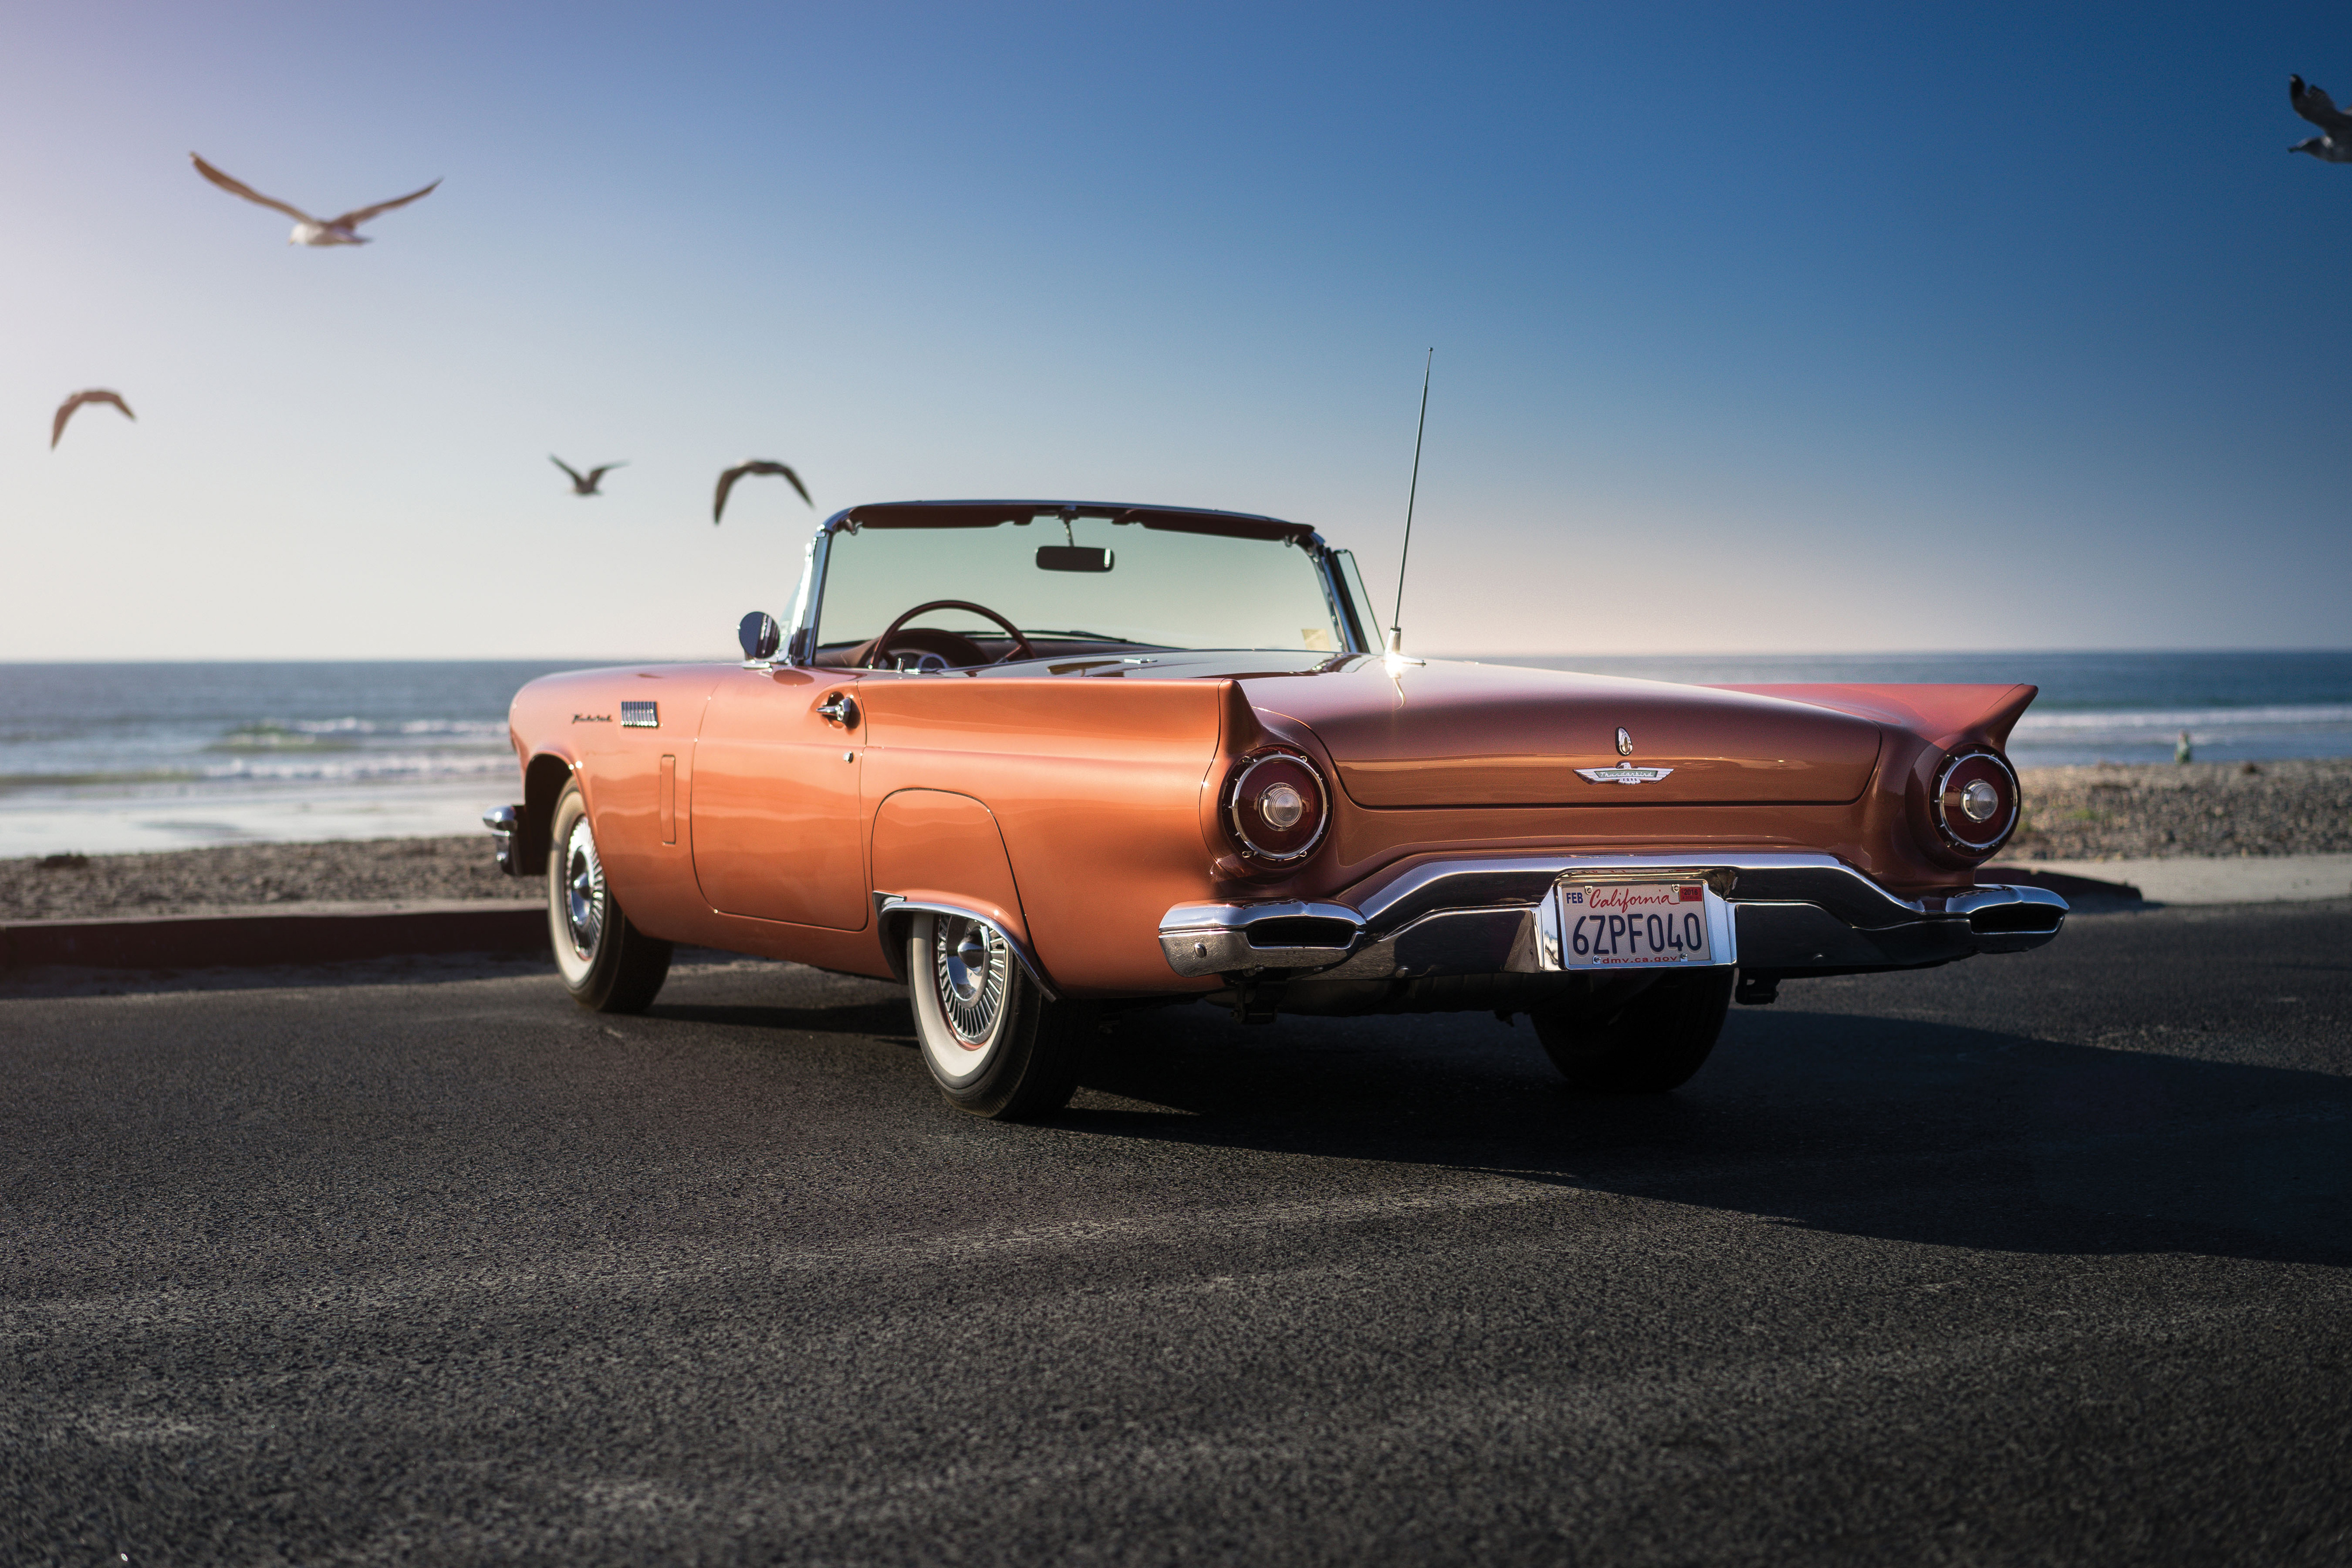 1957 Ford Thunderbird Wallpaper Hd Cars 4k Wallpapers Images Photos And Background Wallpapers Den